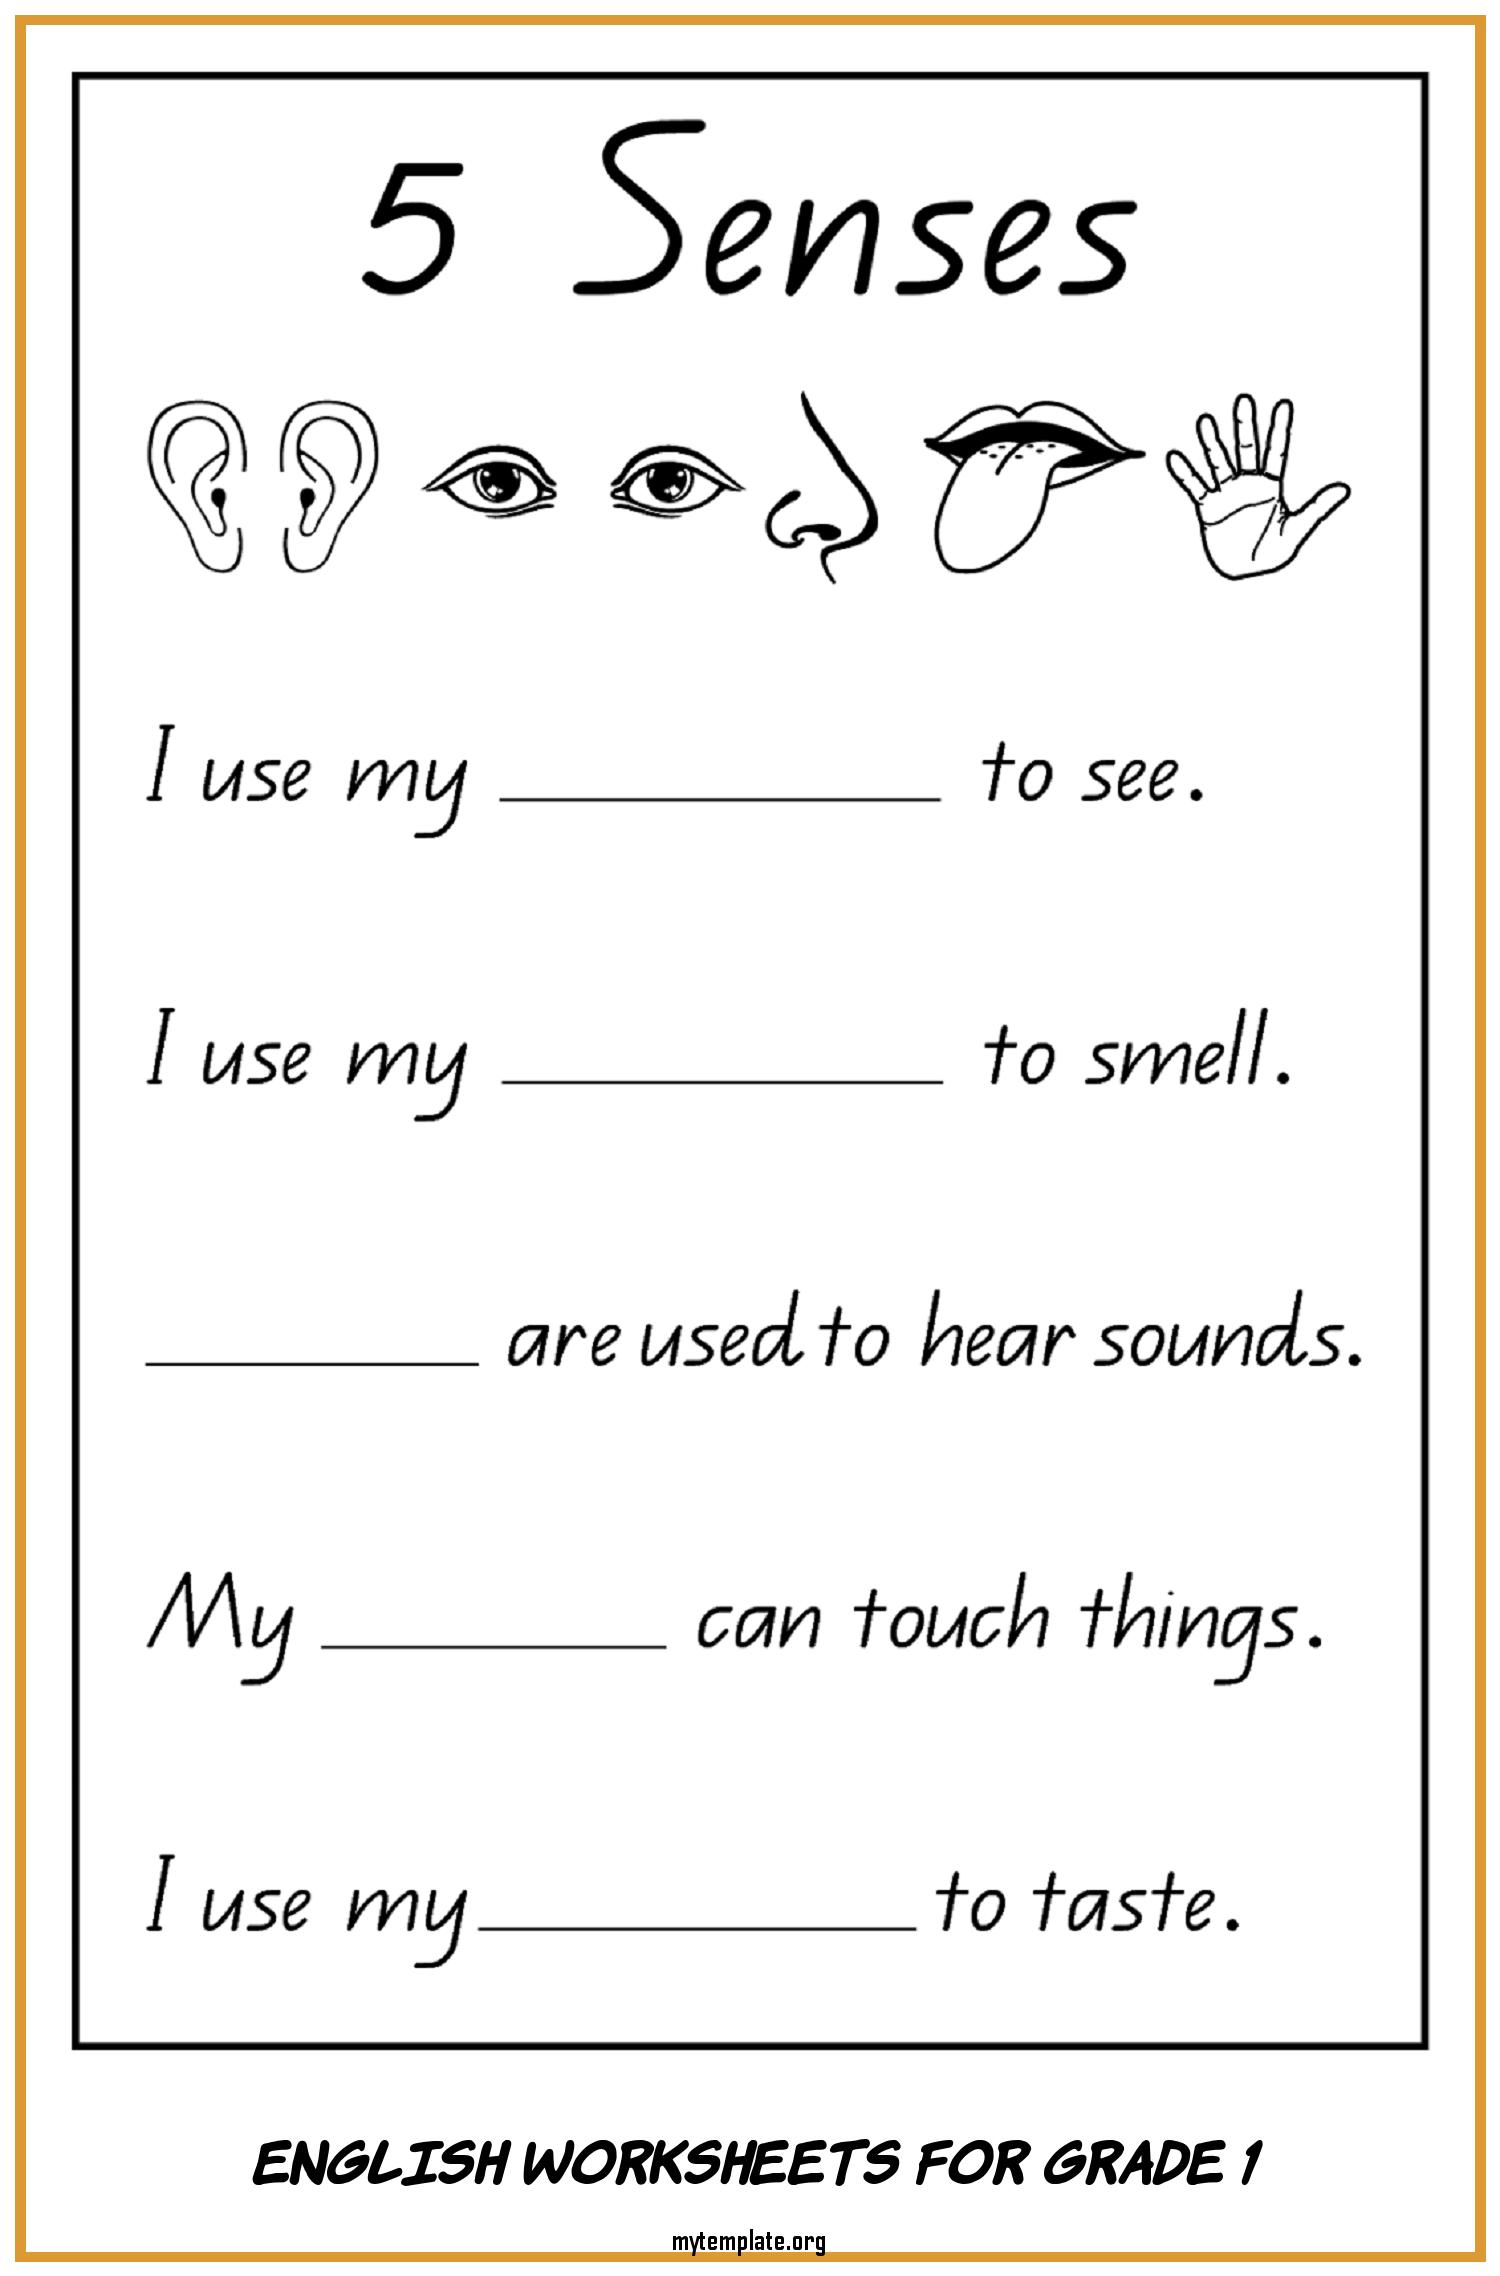 hight resolution of 7 English Worksheets for Grade 1 - Free Templates